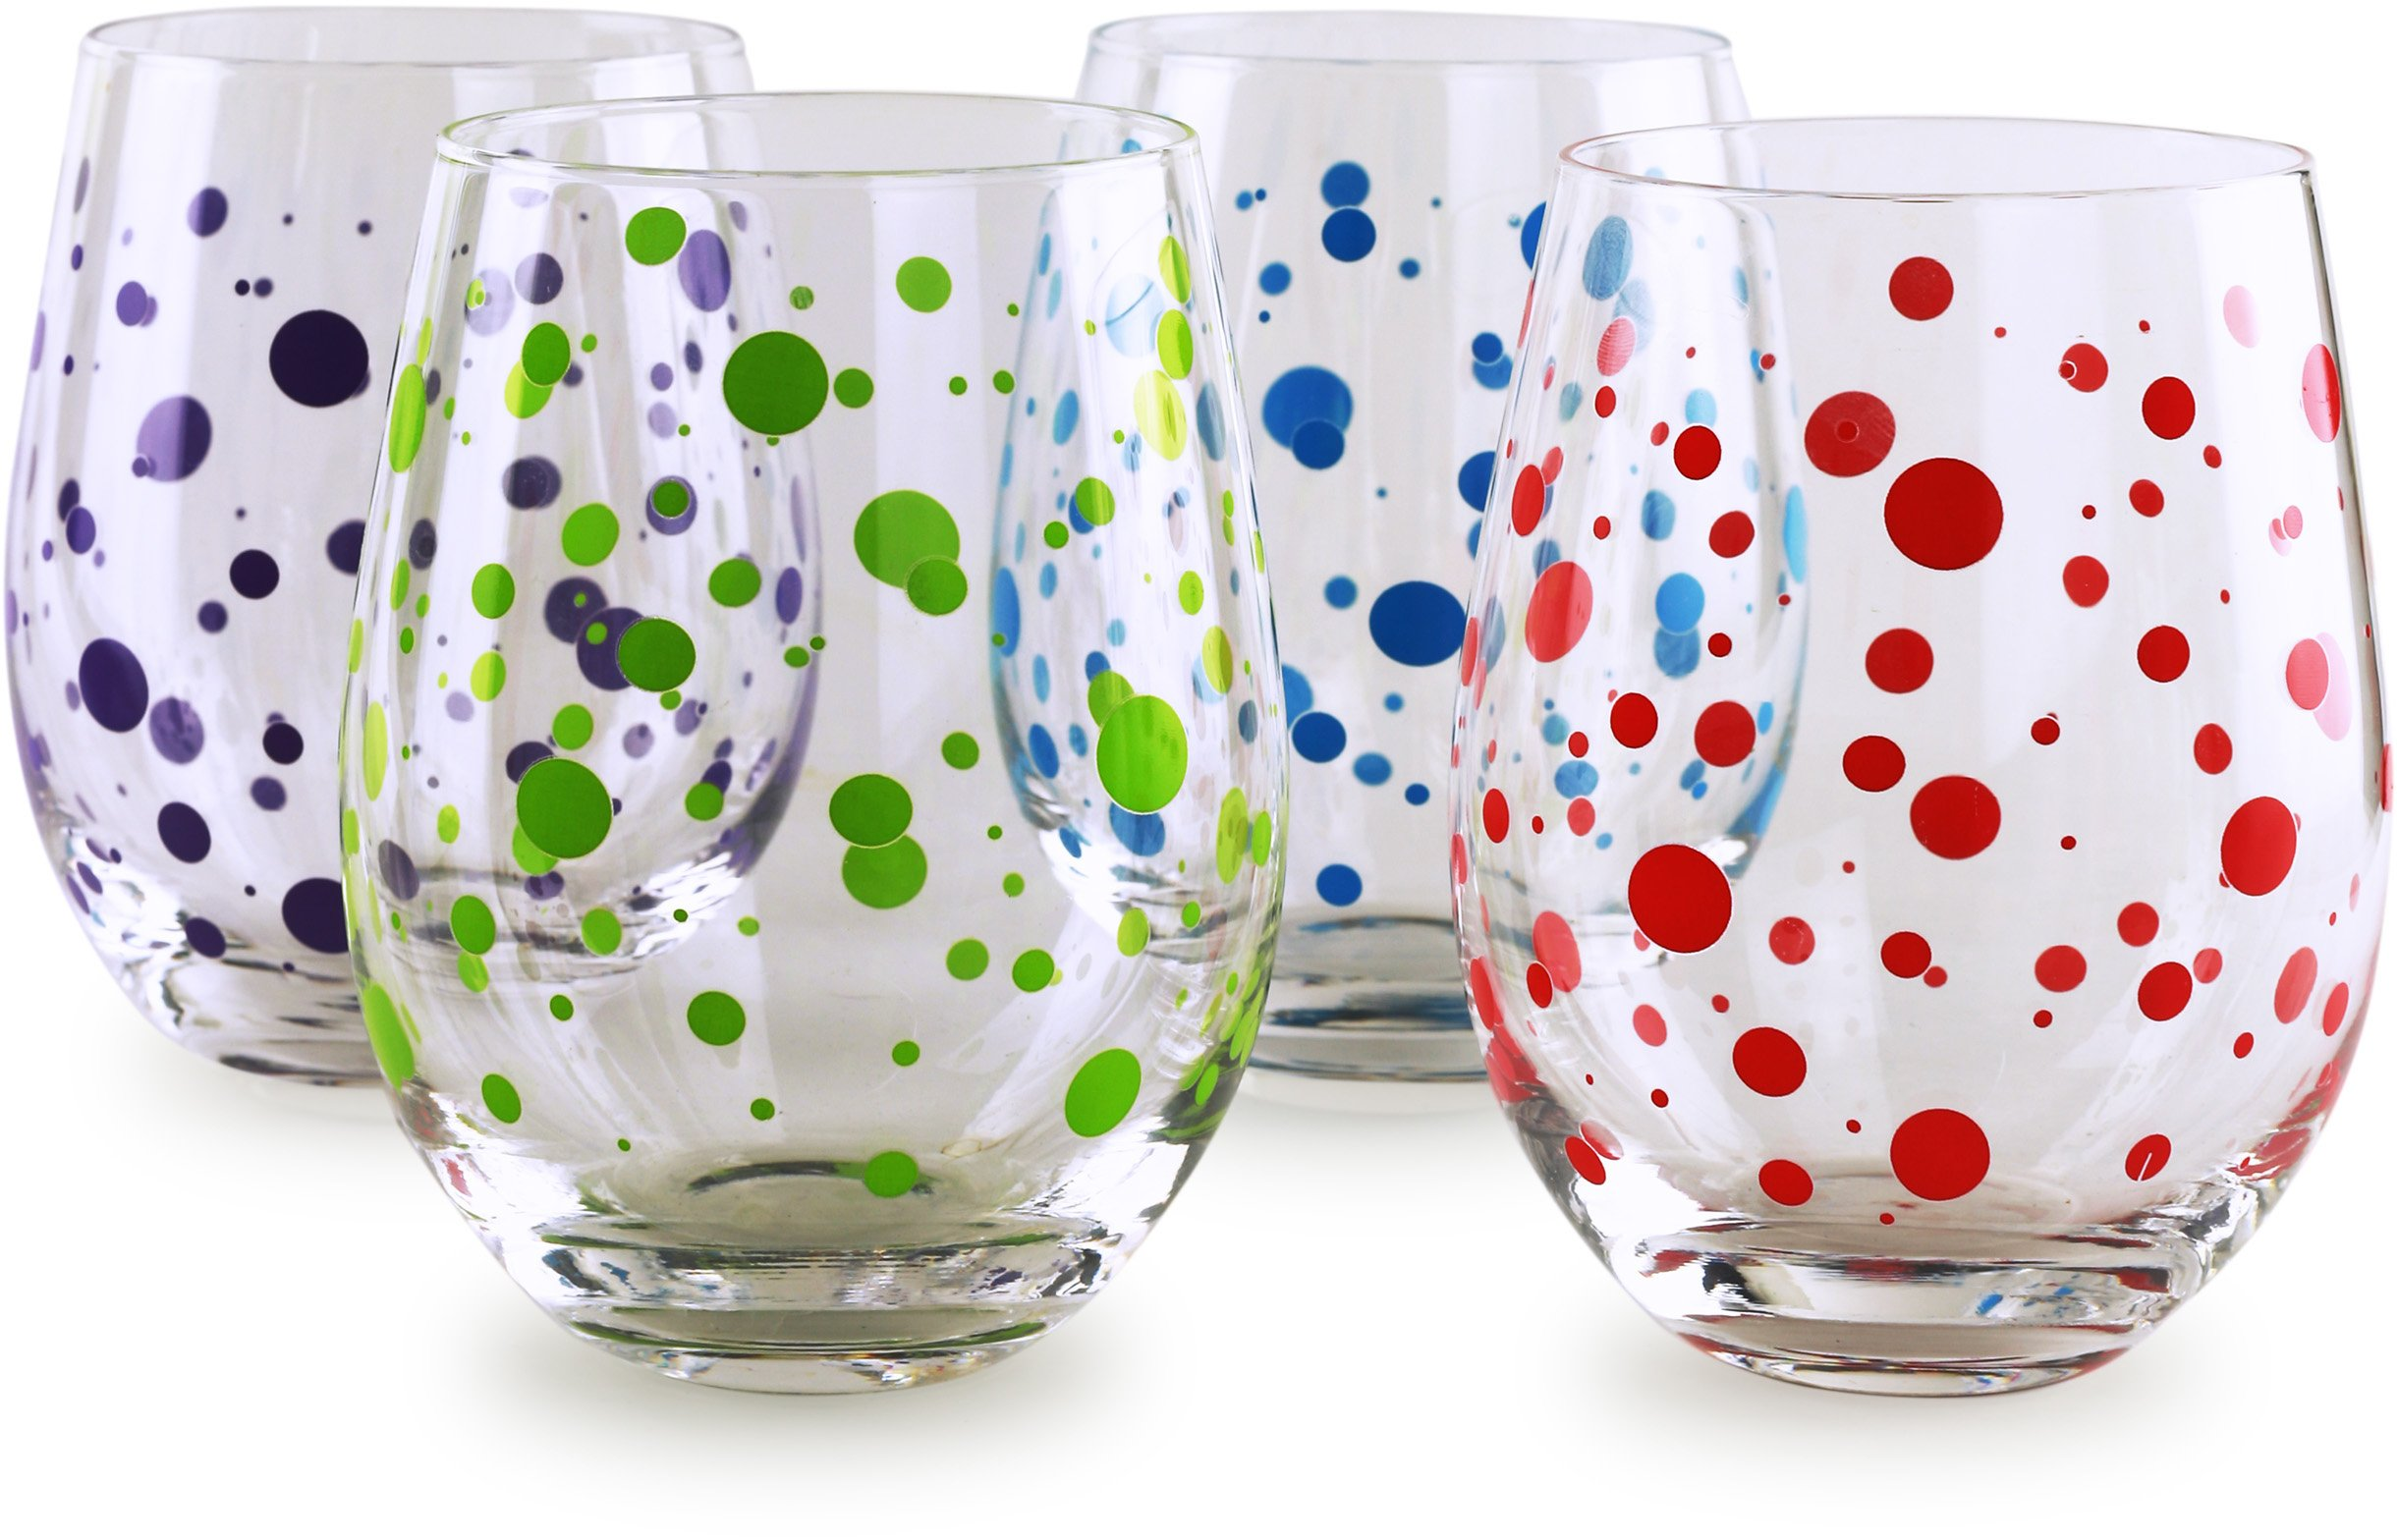 Circleware 77027 Polka Dots Stemless Wine Glasses, Set of 4 Drinking Glassware for Water, Juice, Beer, Liquor and Best Selling Kitchen and Home Decor Bar Dining Beverage Gifts, 18.9 oz, Colored